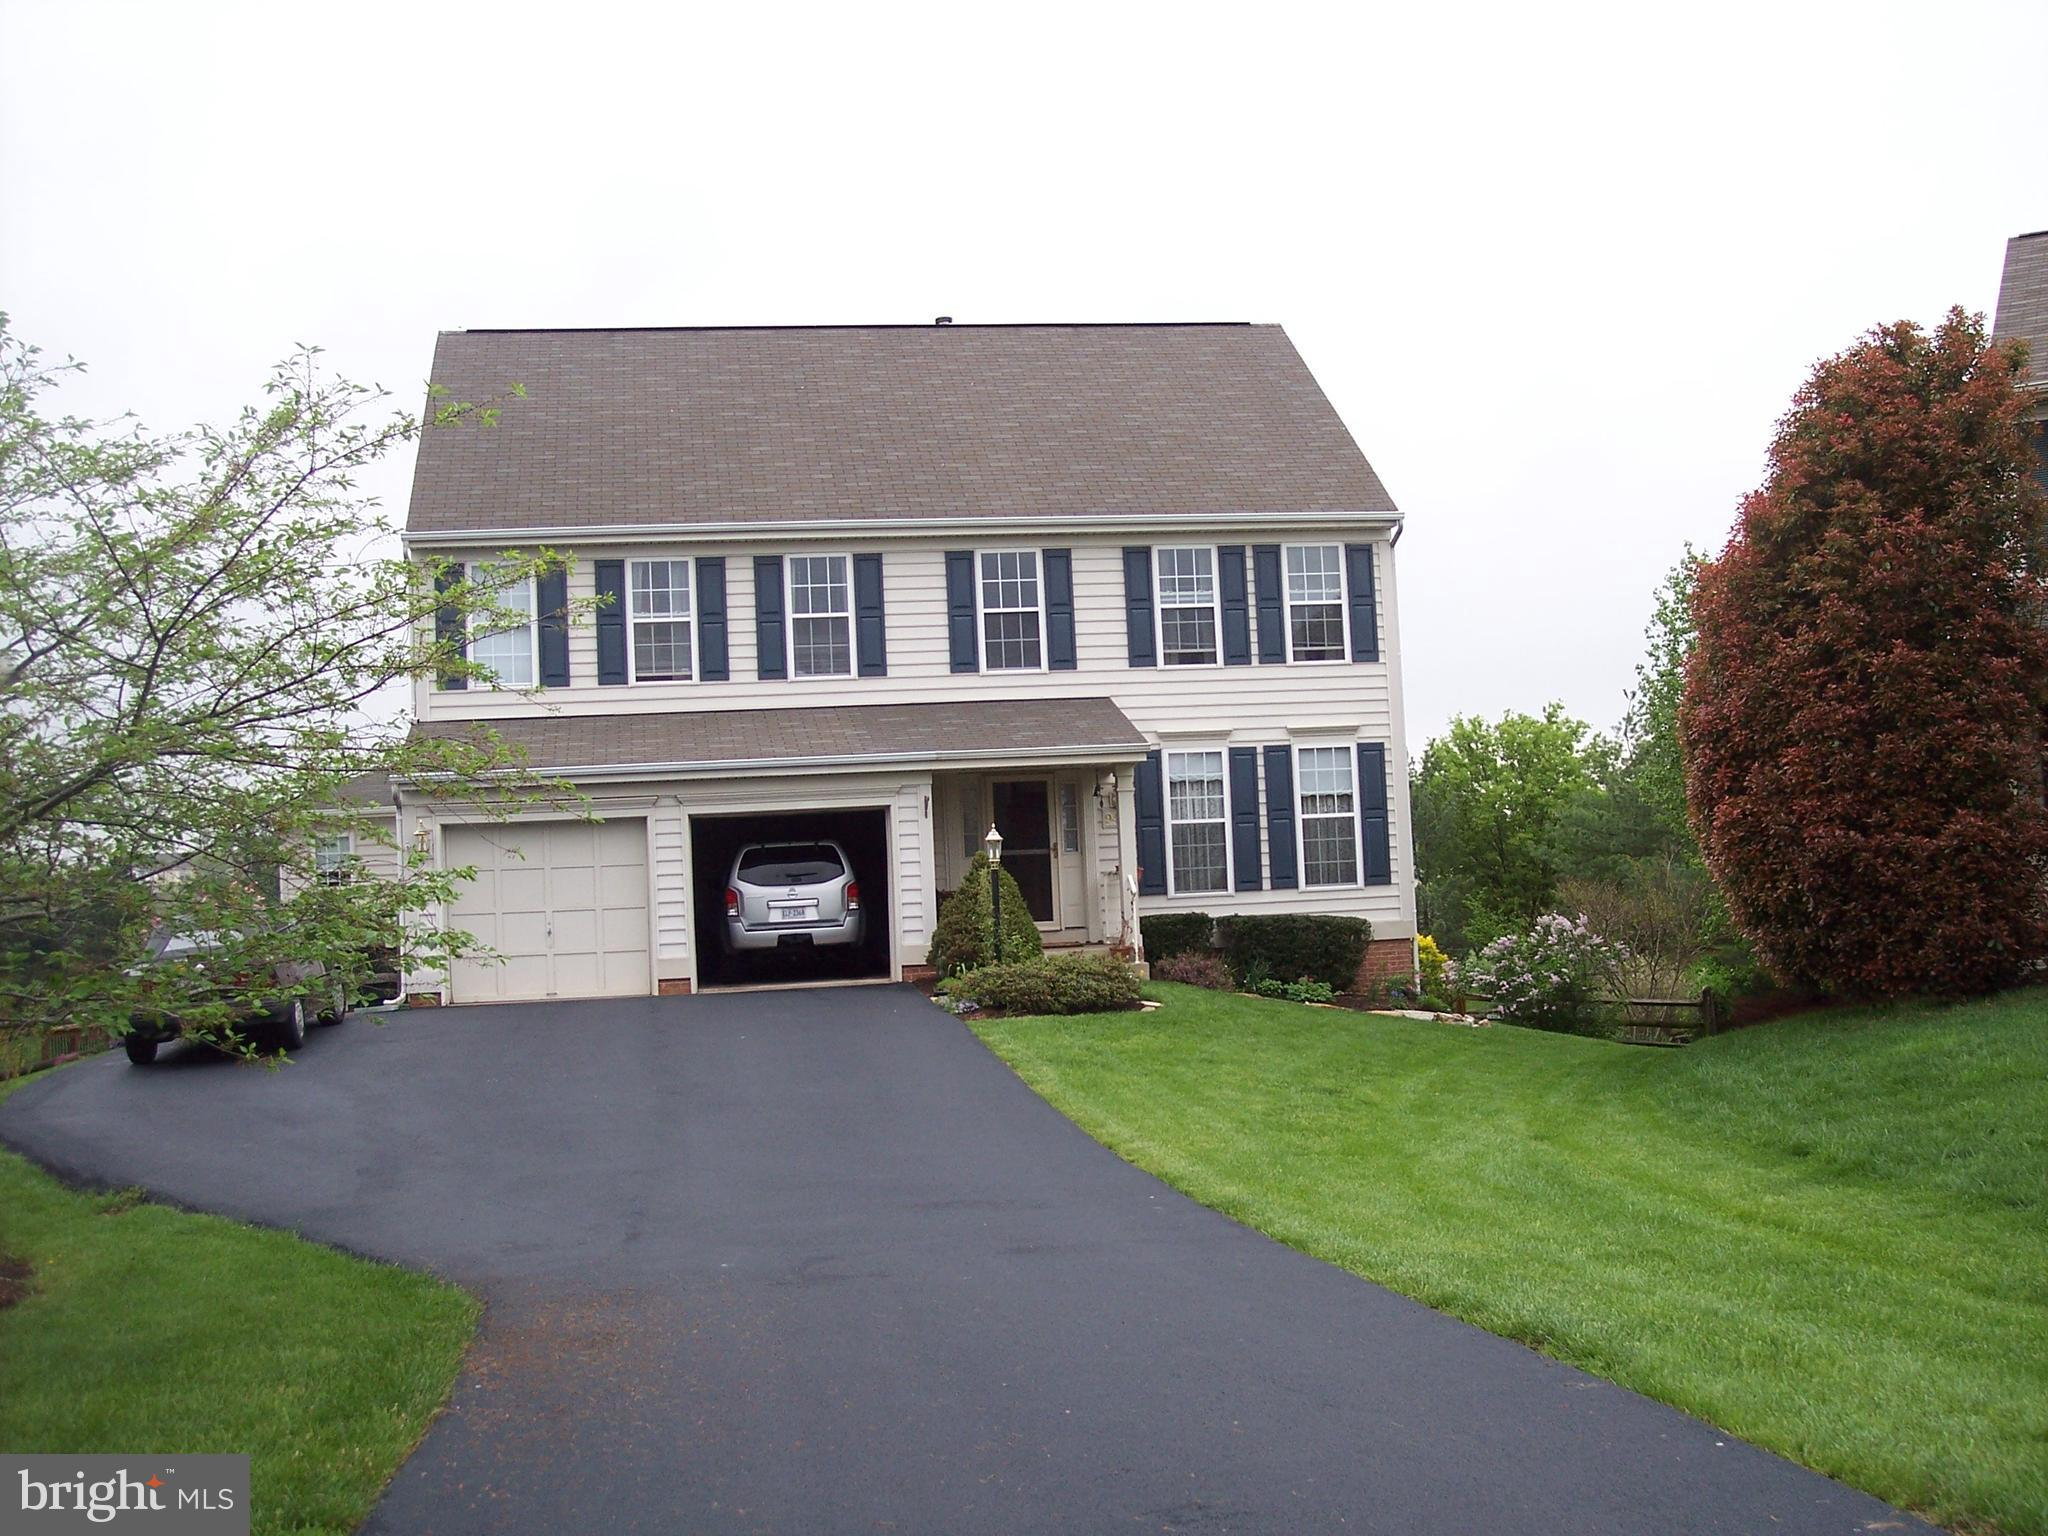 9457 WEEPING WILLOW DRIVE, MANASSAS, VA 20110